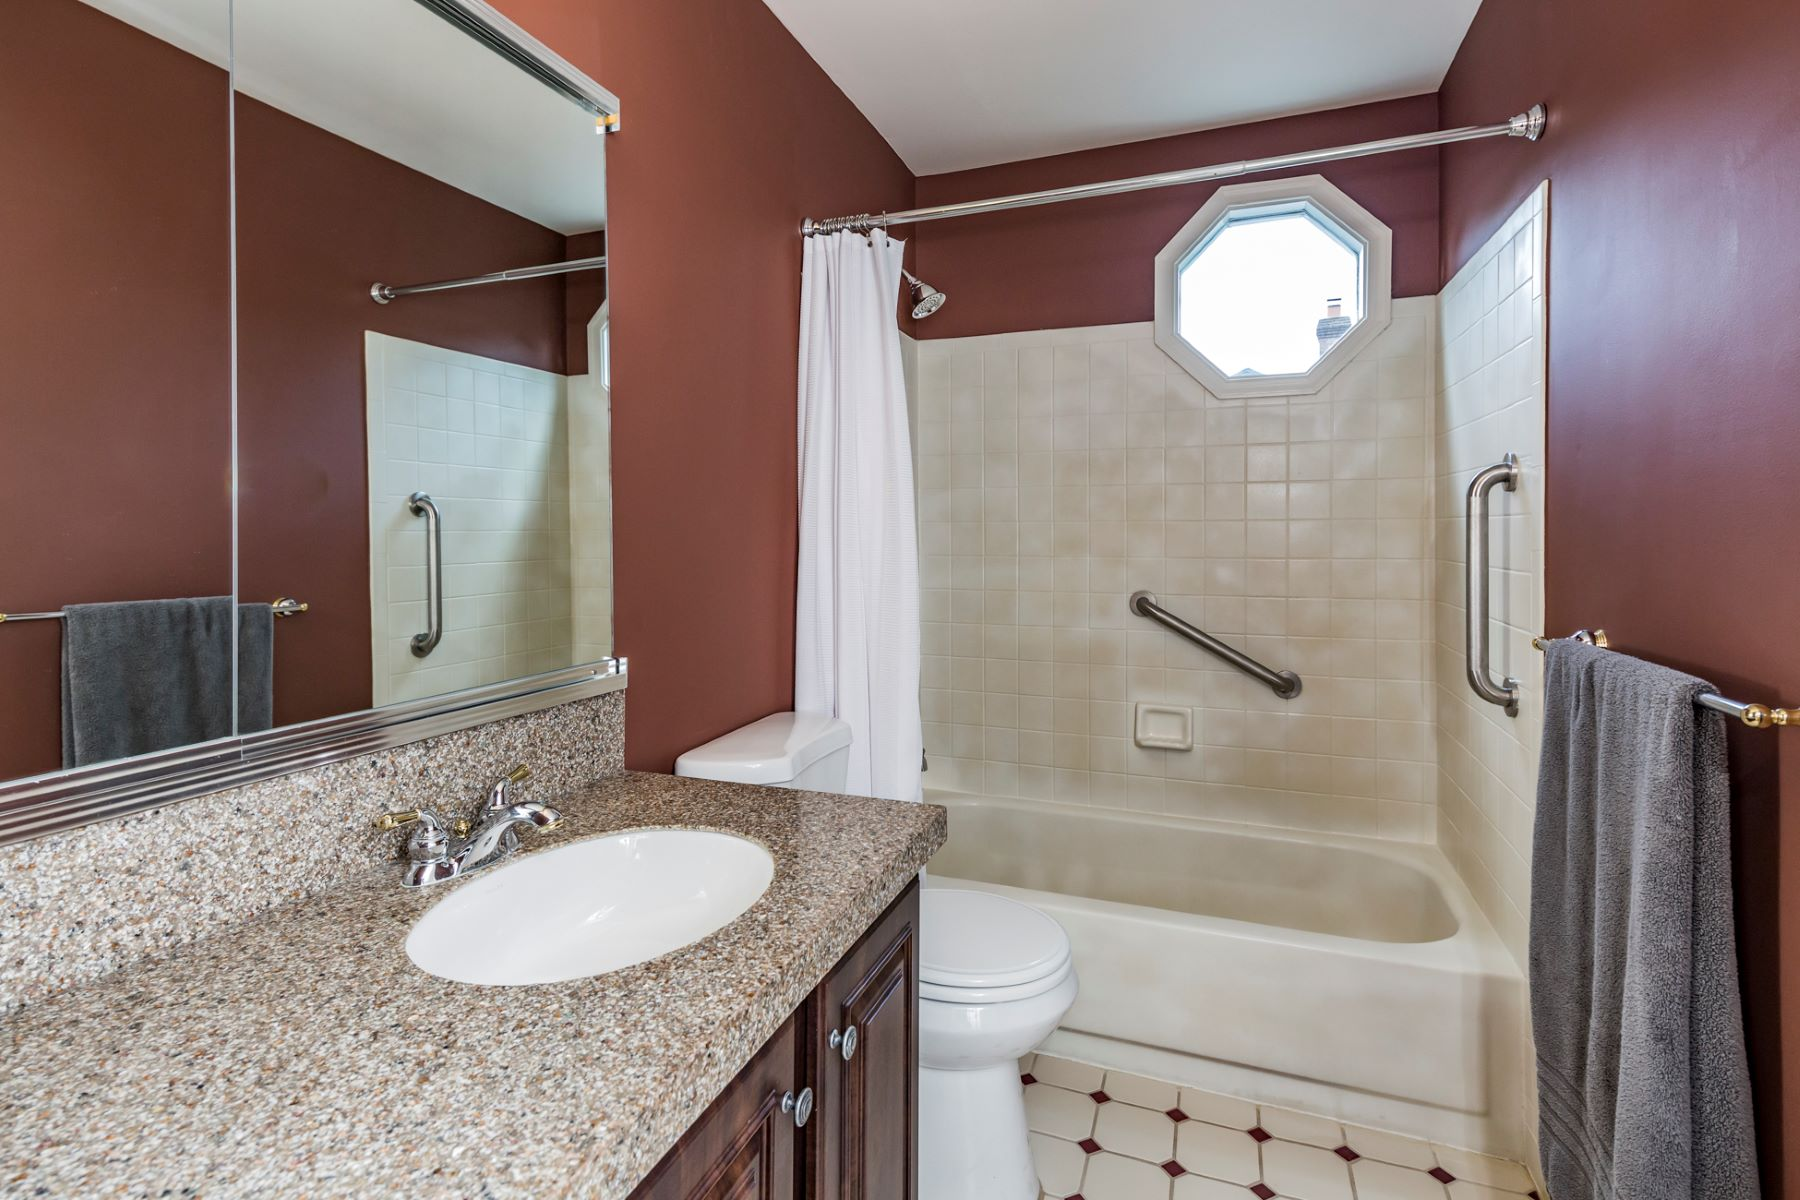 Additional photo for property listing at Lounge and Entertain in Updated Lawrenceville Home 16 Andrew Drive, Lawrenceville, New Jersey 08648 United States